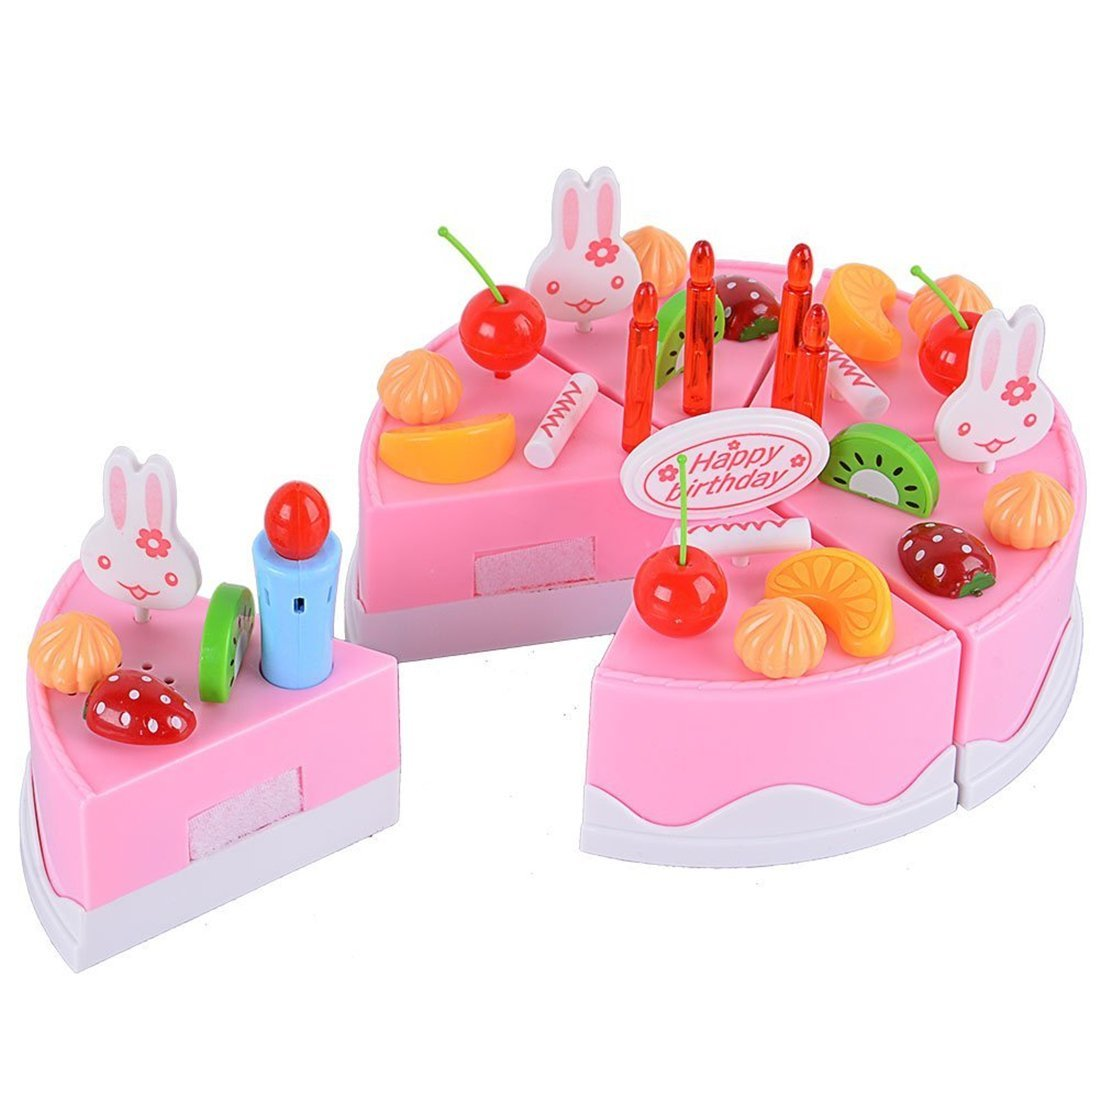 Party Toy Cake Velcro Play Food Set for Children Kids Play Food Set Plastic Kitchen Cutting Toy Pretend Play Food Assortment Toy Set Birthday Cake for Kids Girls - 75Pcs Pink